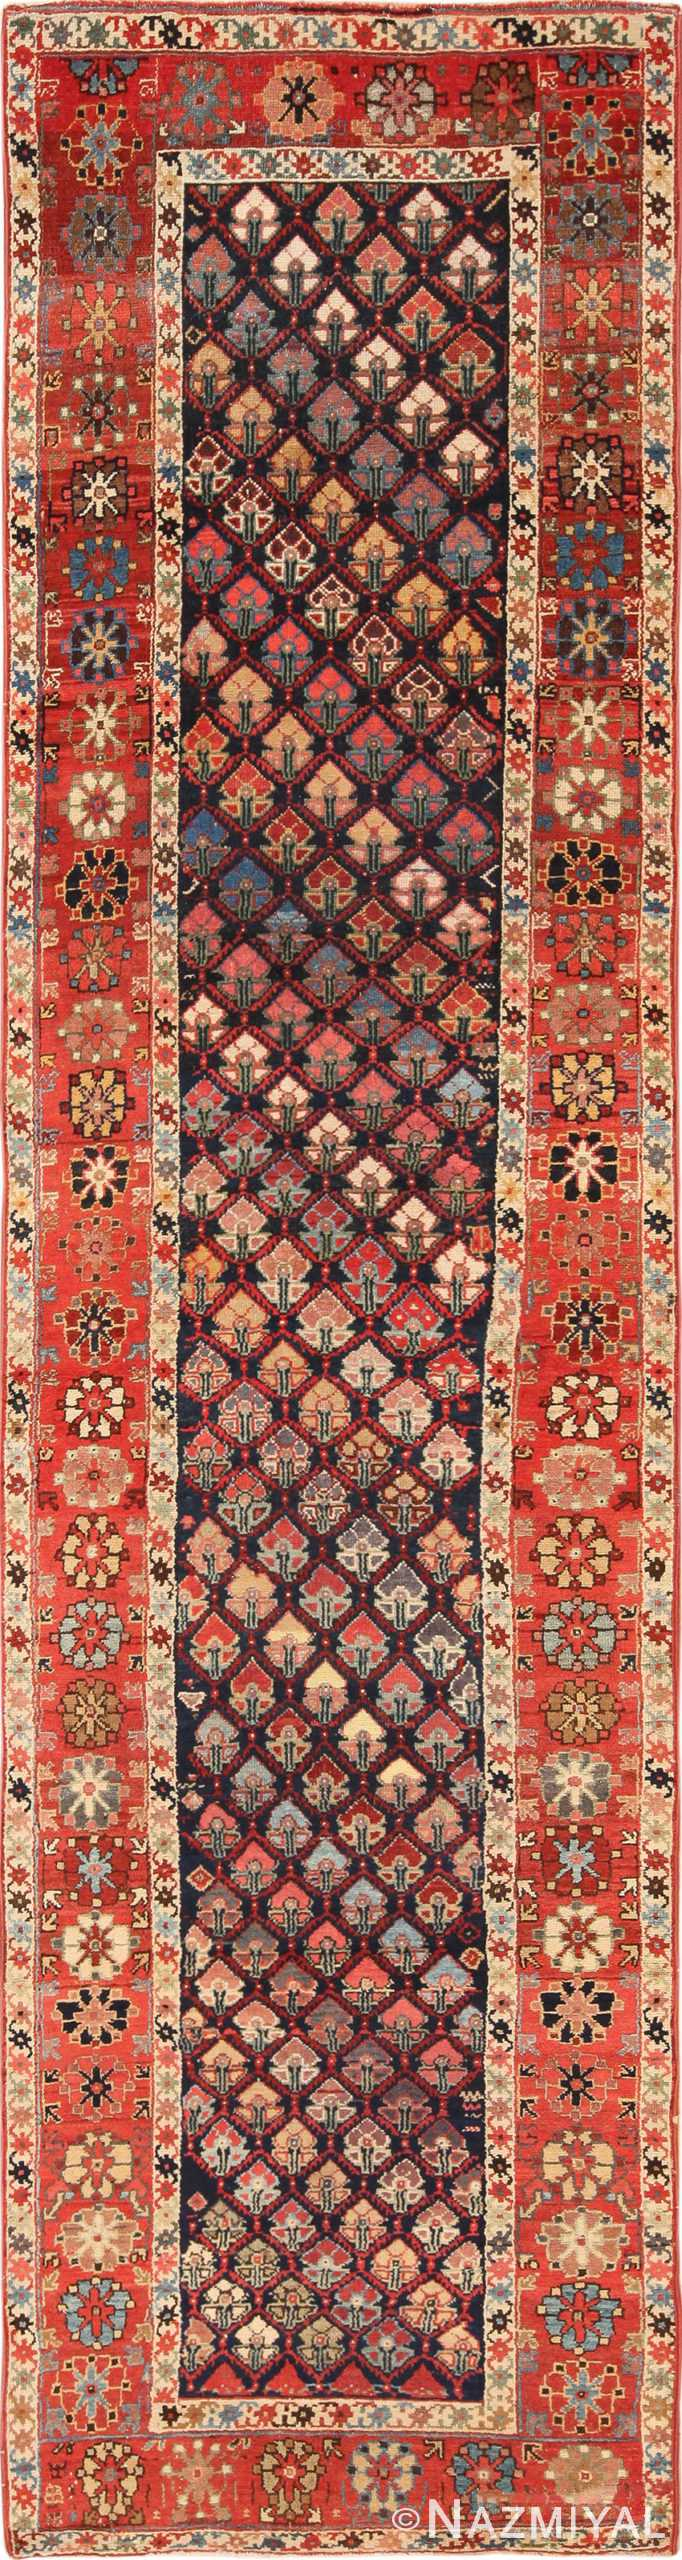 Tribal Antique Northwest Persian Runner Rug 49423 by Nazmiyal